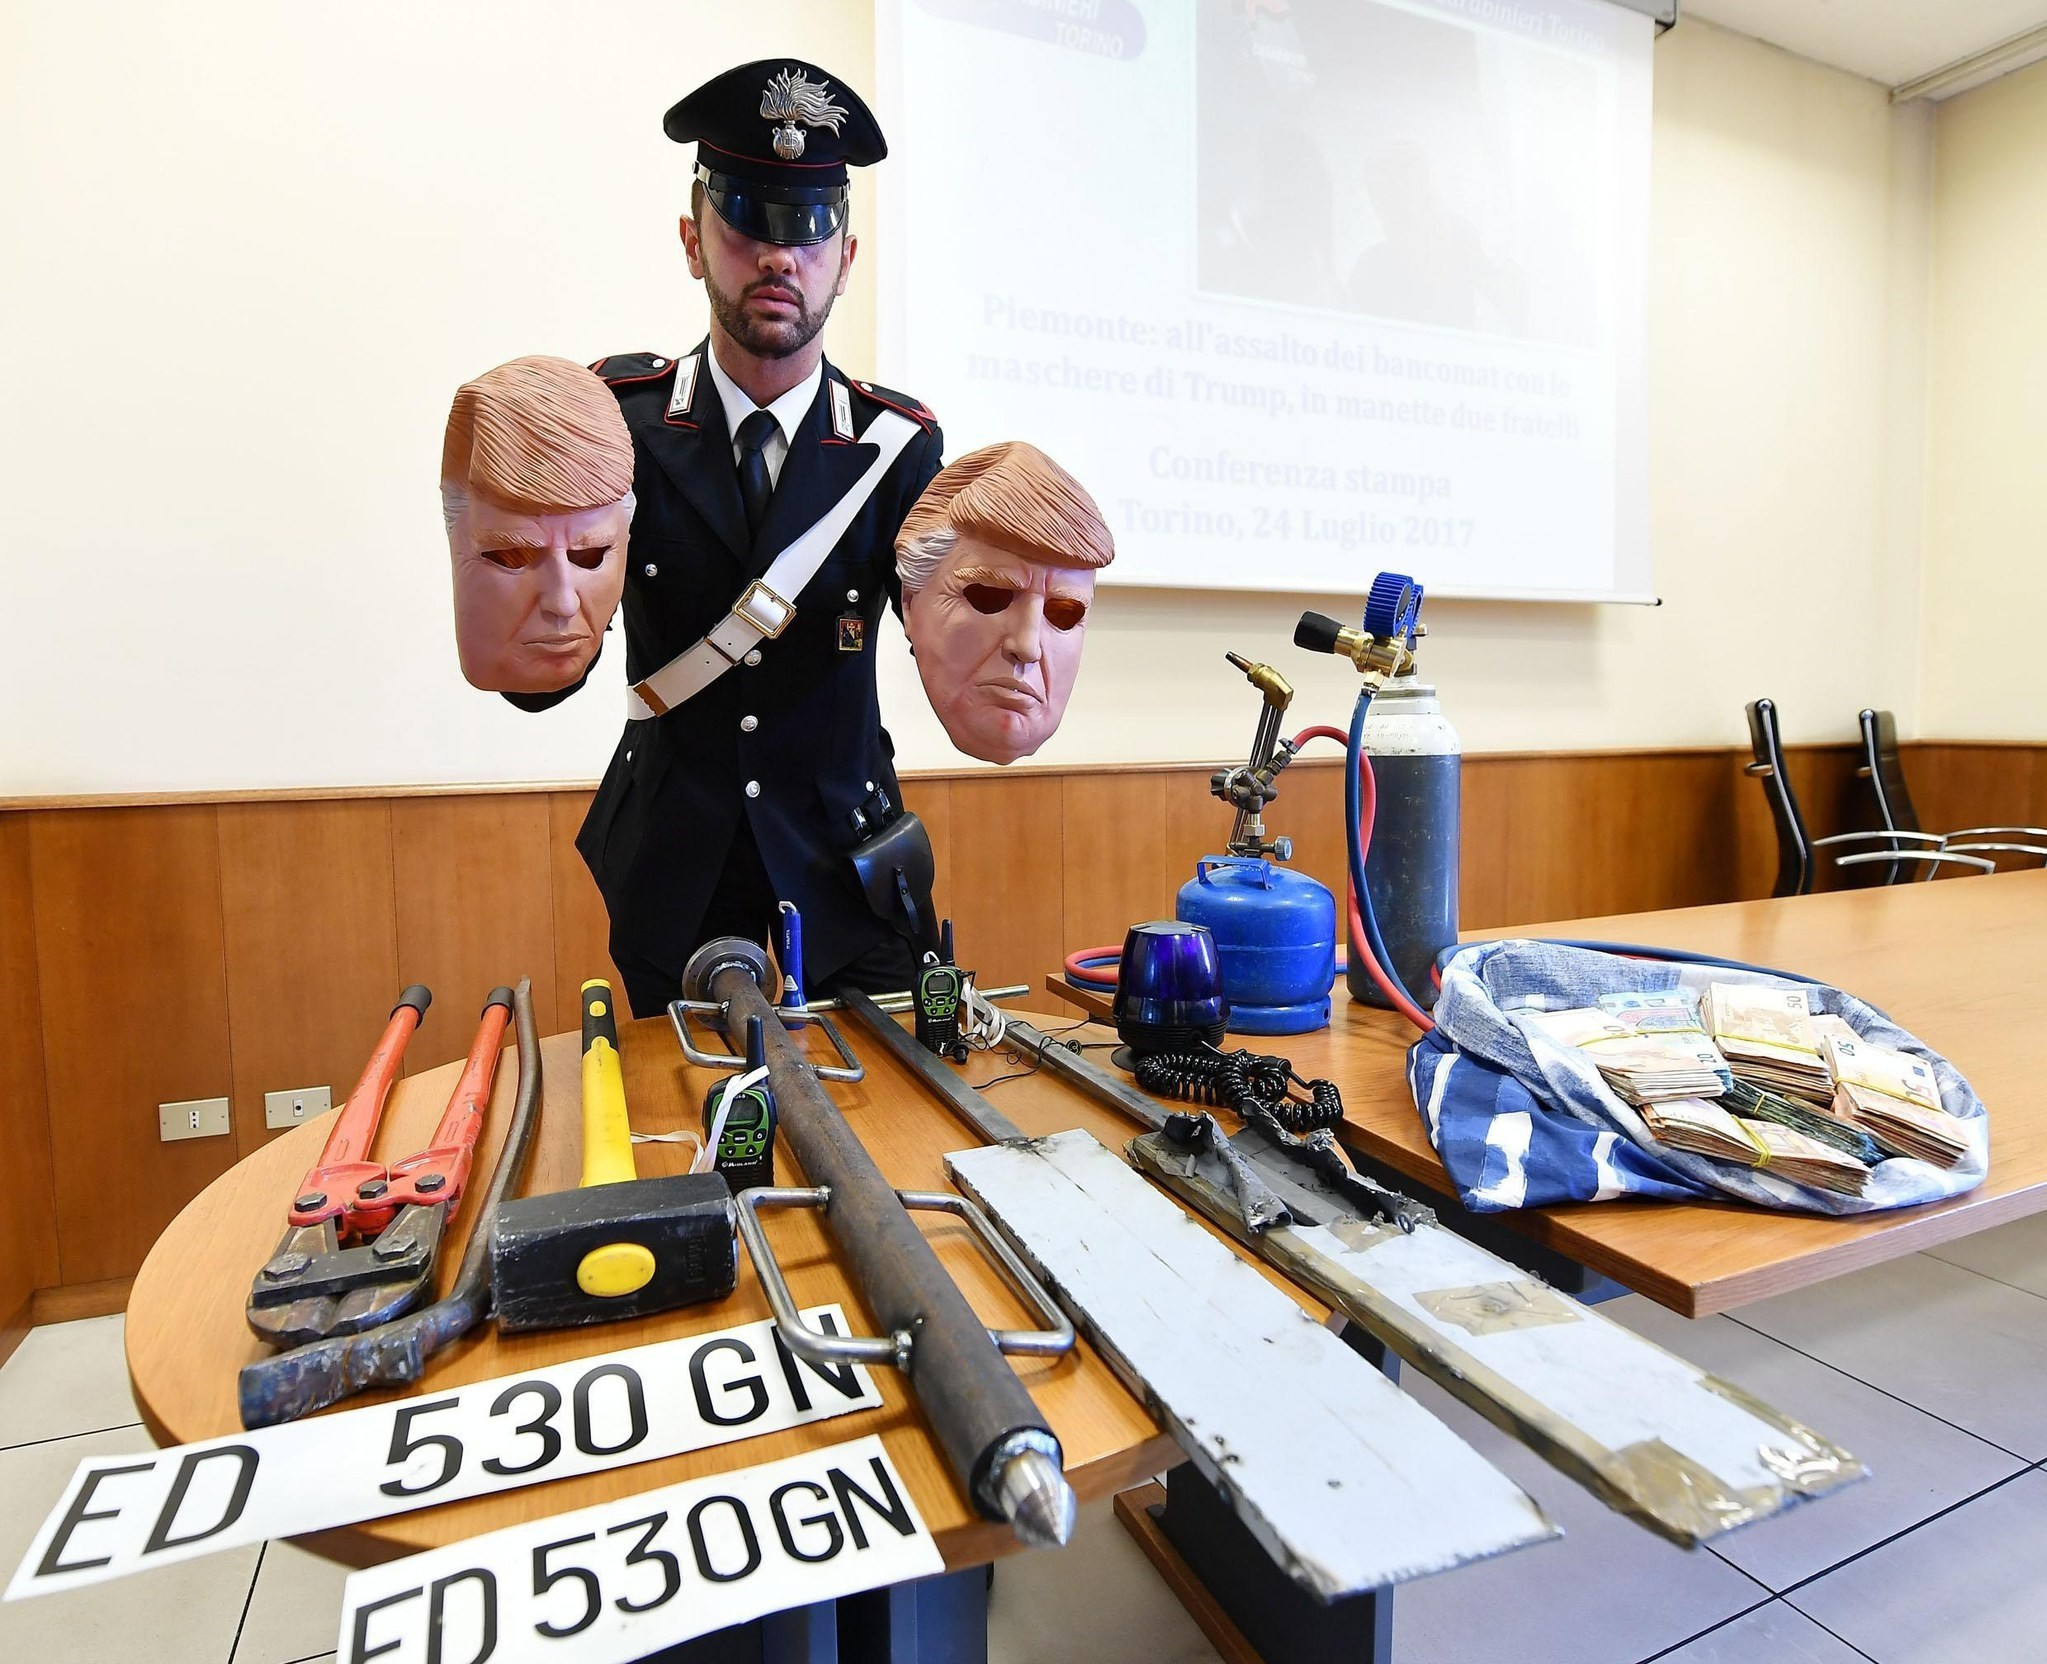 Masks of US President Donald J. Trump used by two alleged thieves are displayed by Italian Carabinieri police during a press conference in Turin, northern Italy, 24 July 2017. (EPA Photo)